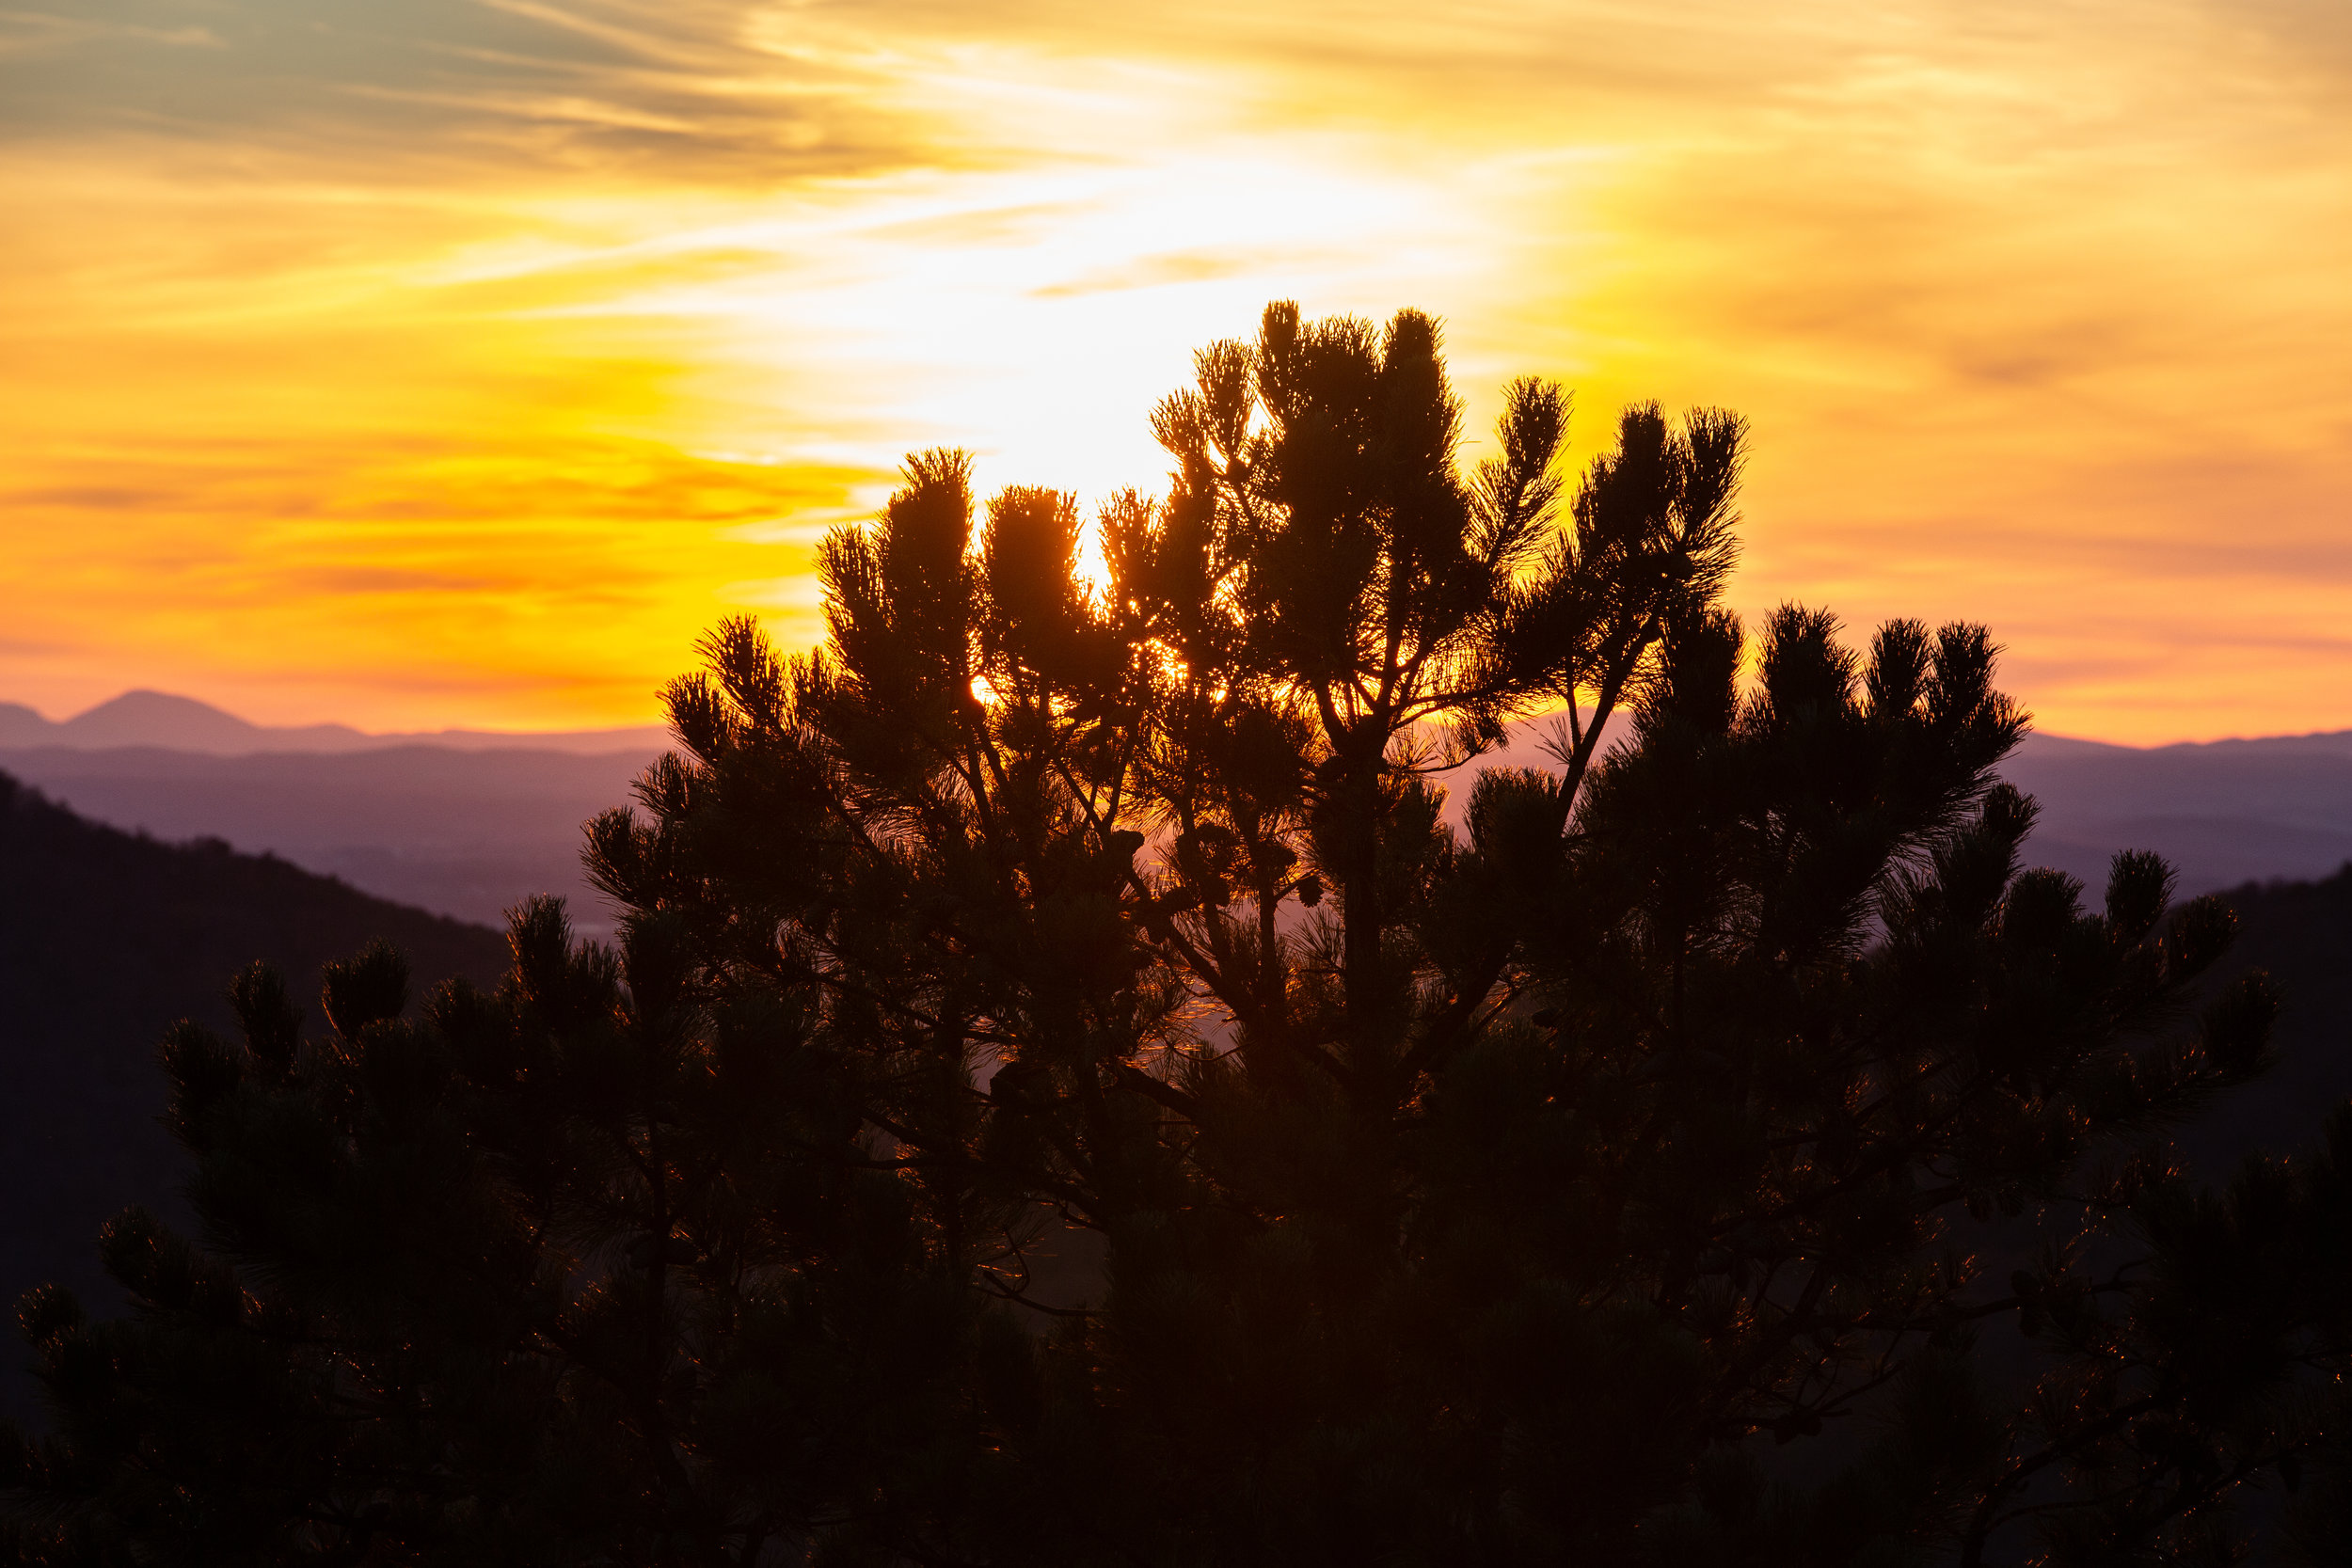 Shenandoah-National-Park-blue-ridge-parkway-day-mountains-afternoon-haze-layers-distance-texture-trees-fall-sunset-evening-pinetree-sunfalre-shadow-silhouette